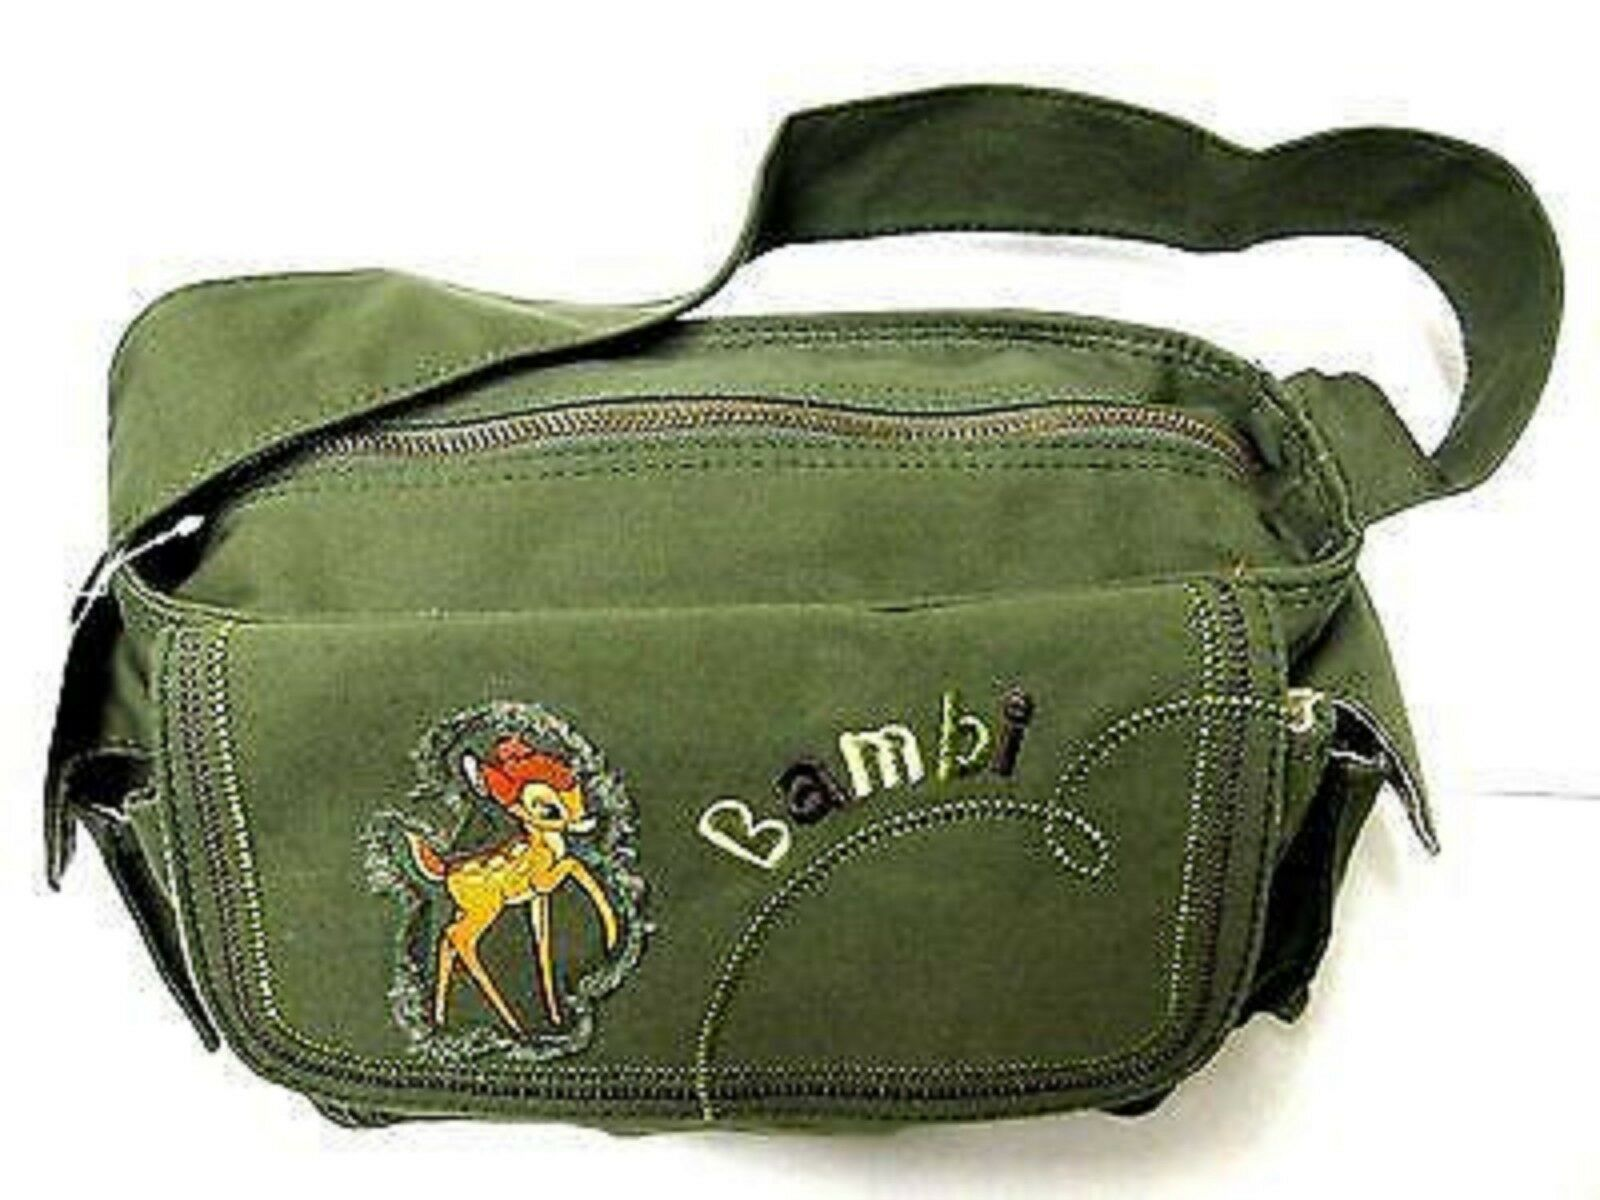 Disney Bambi Army Green Waist Fanny Pack//Carry Bag w Adjustable Strap